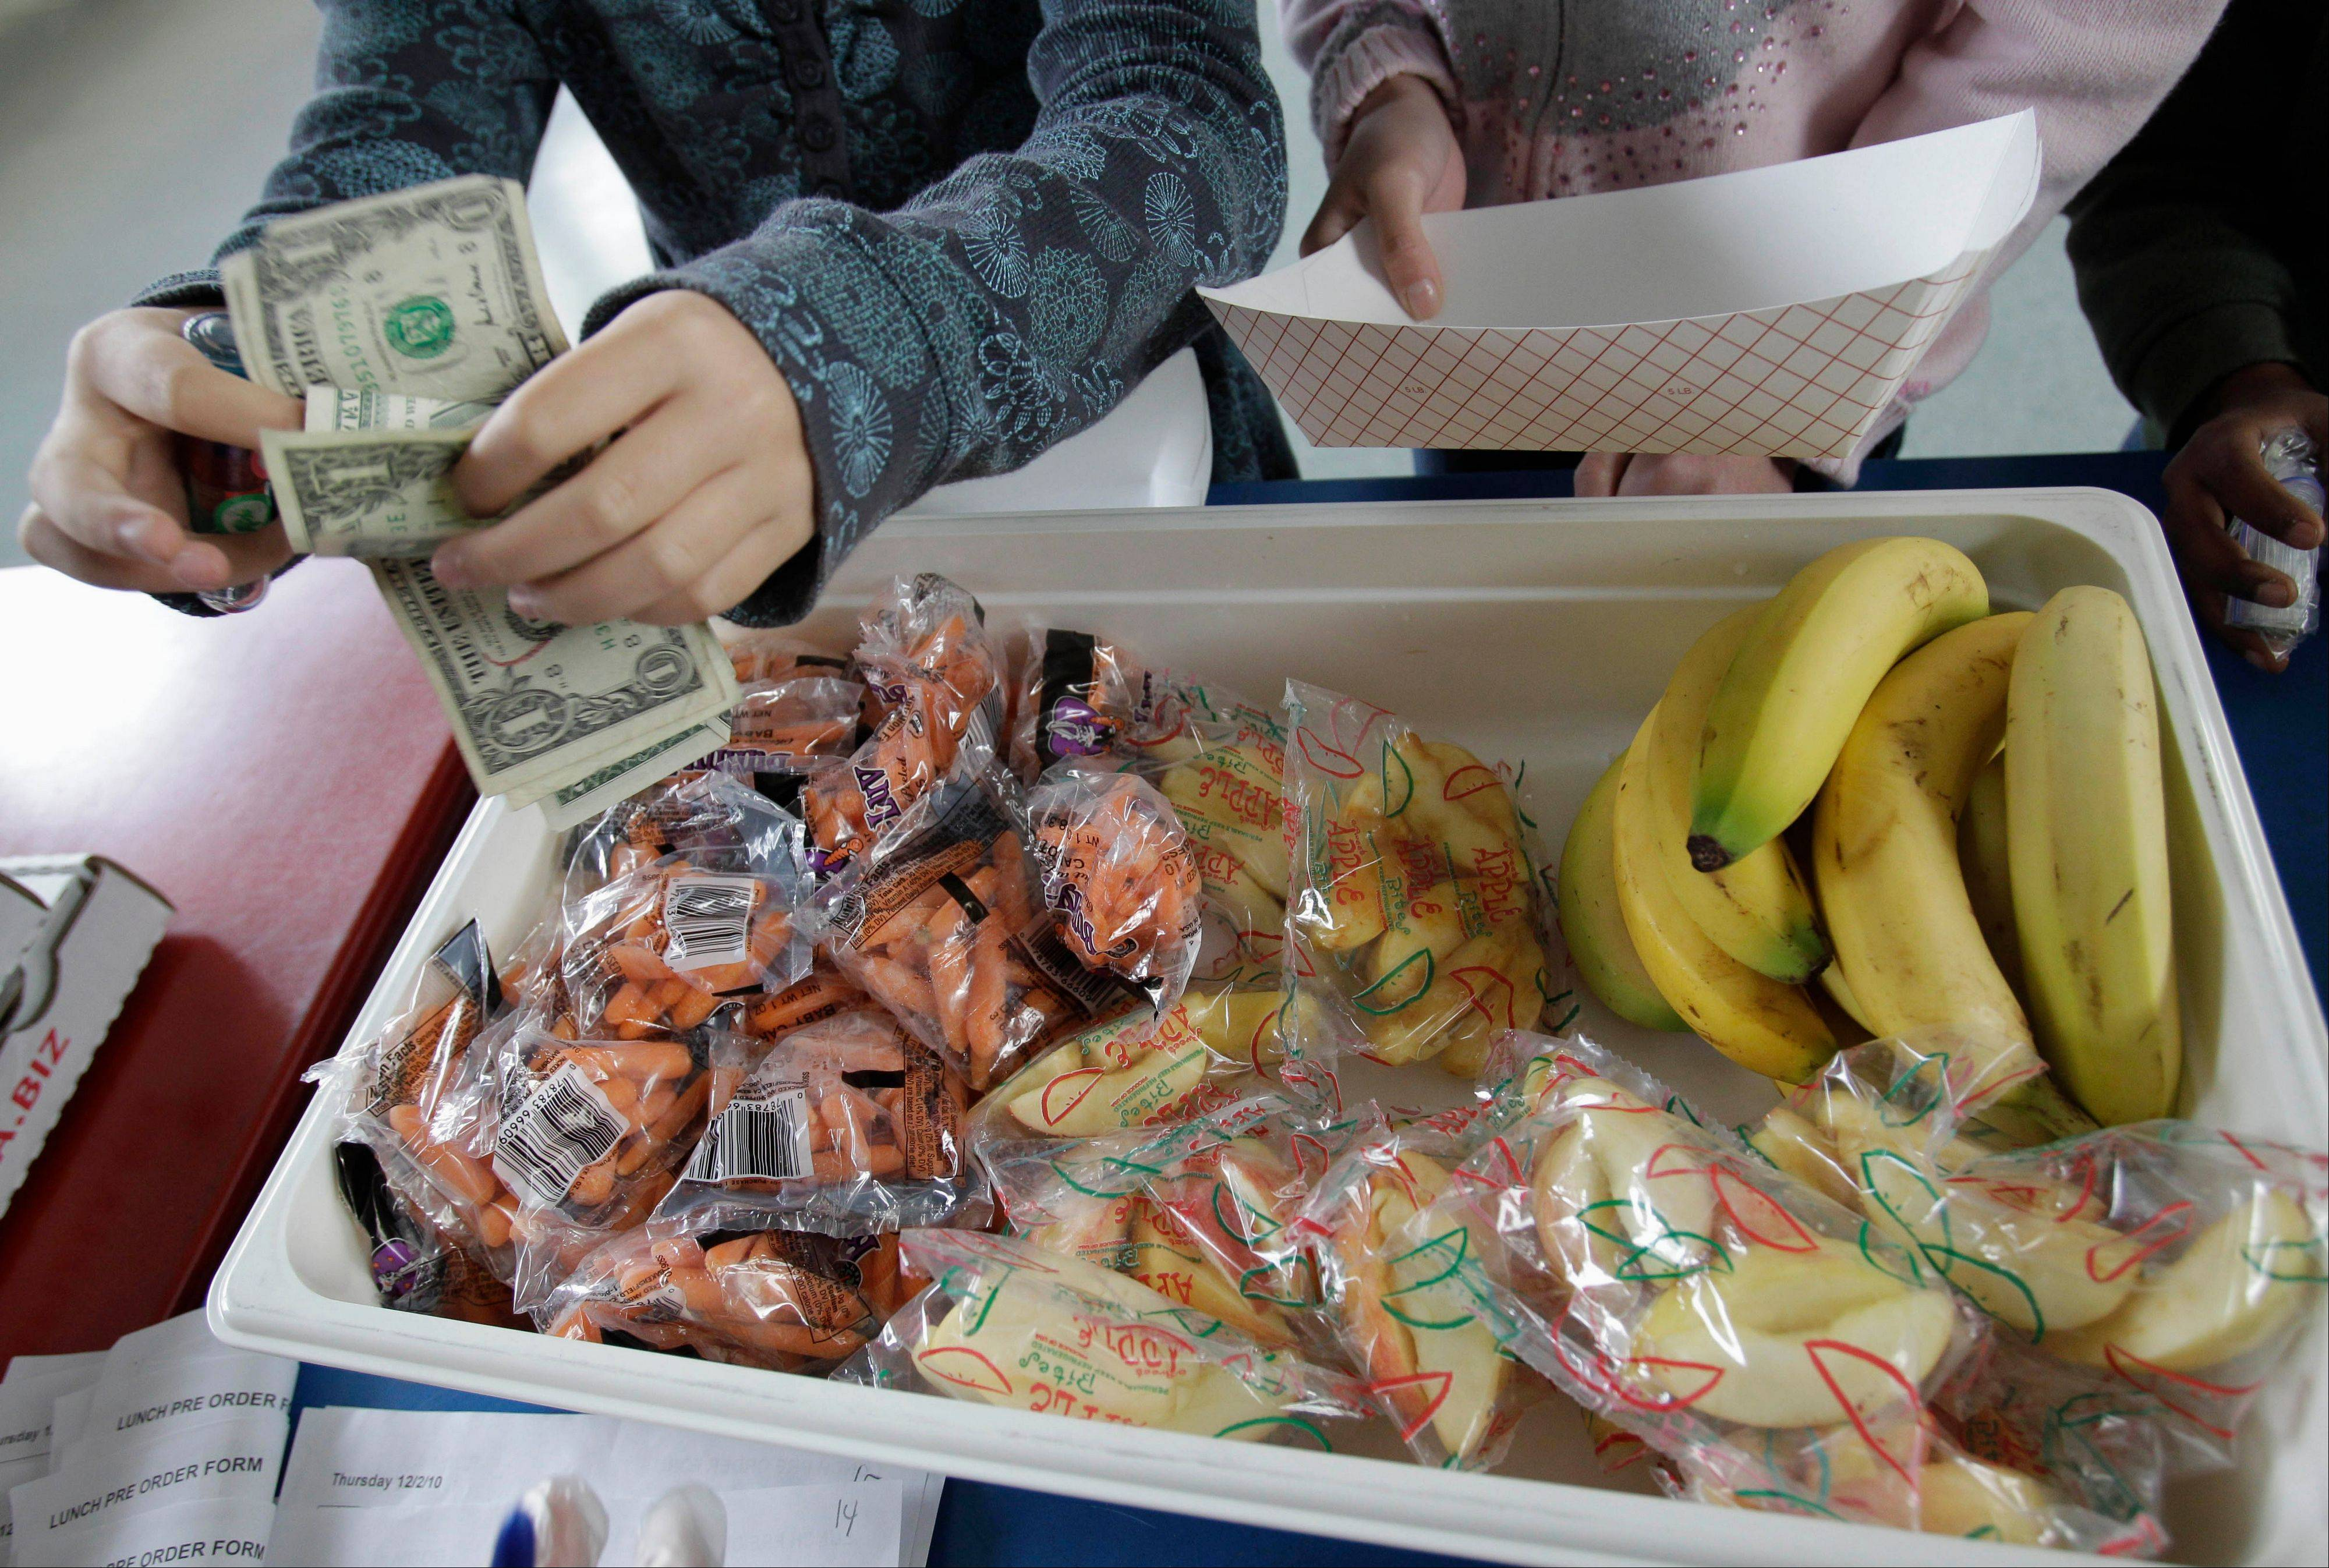 About 30 elementary students in Salt Lake City had their school lunches thrown out because money was owed on their food accounts.